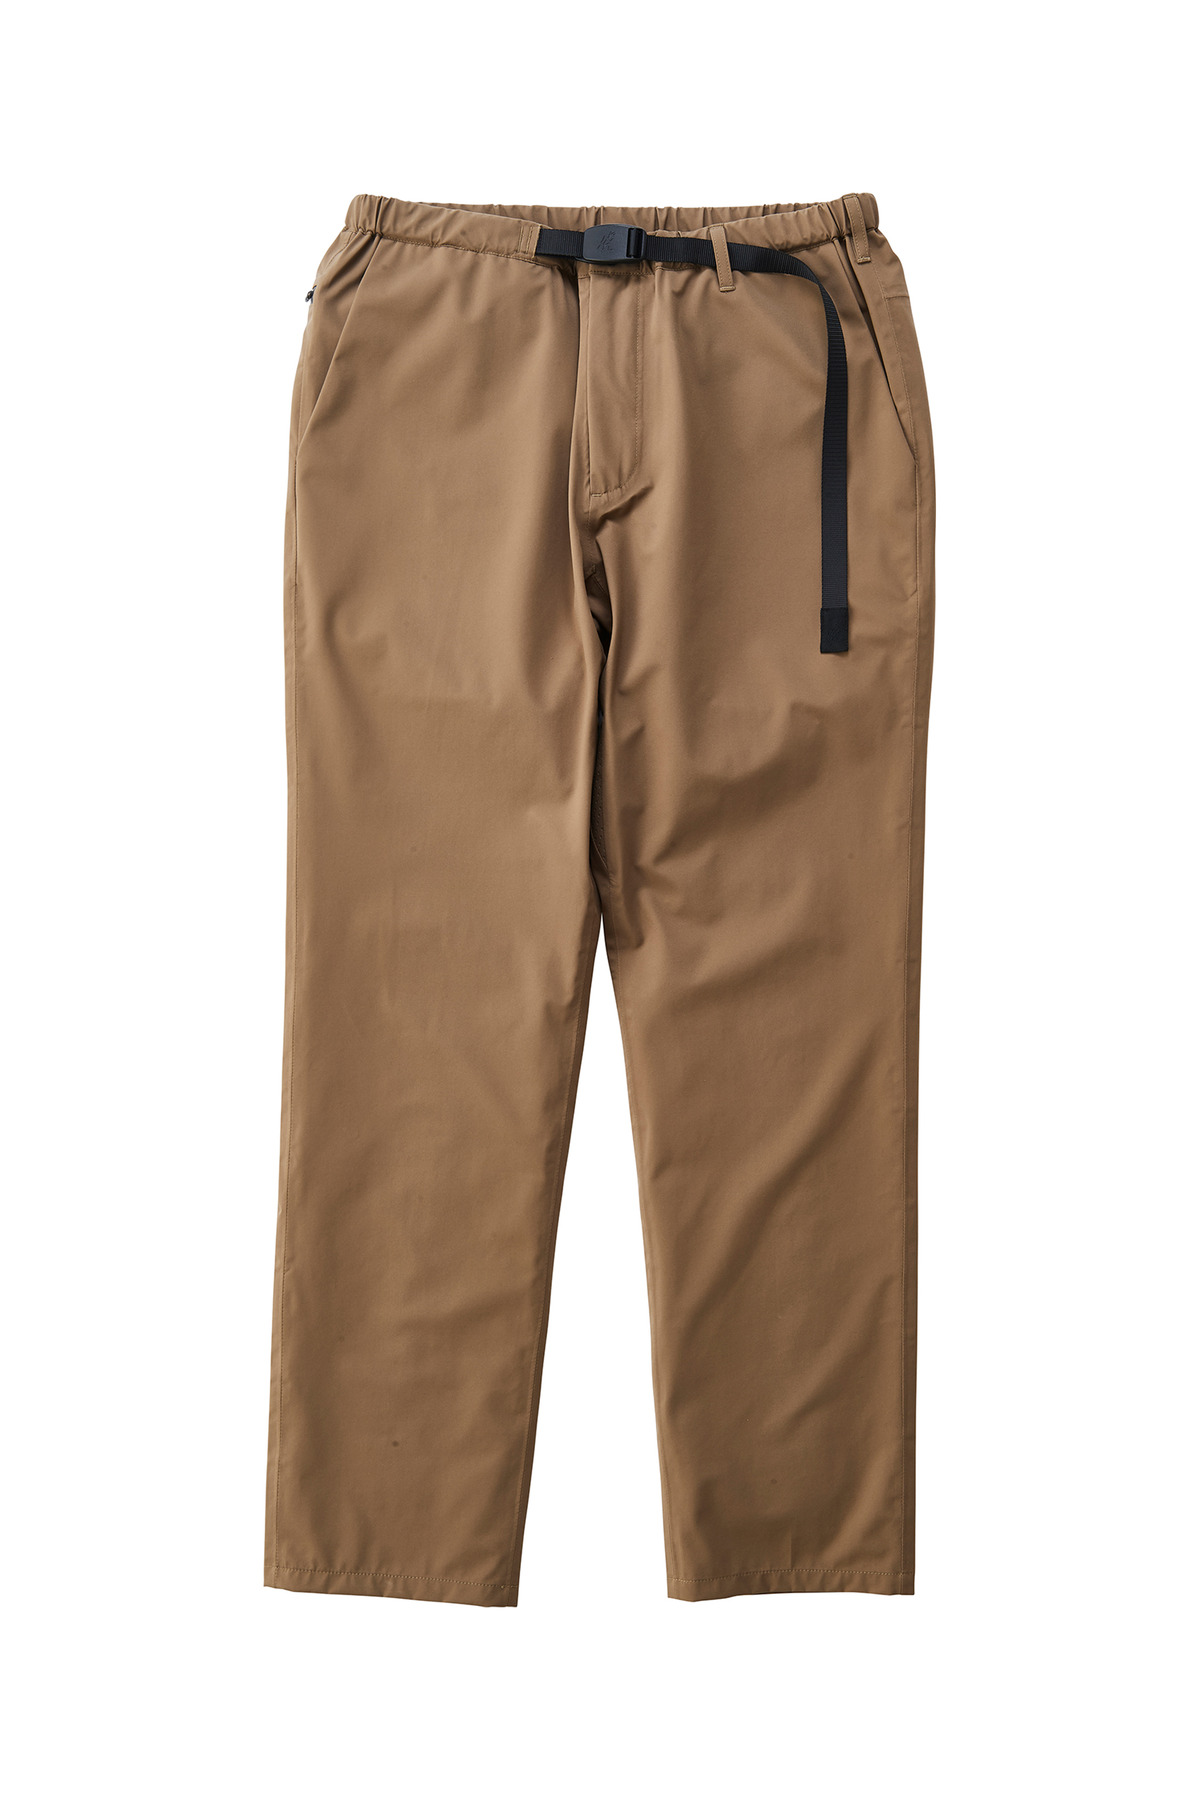 3LAYER REDROCK PANTS TAUPE